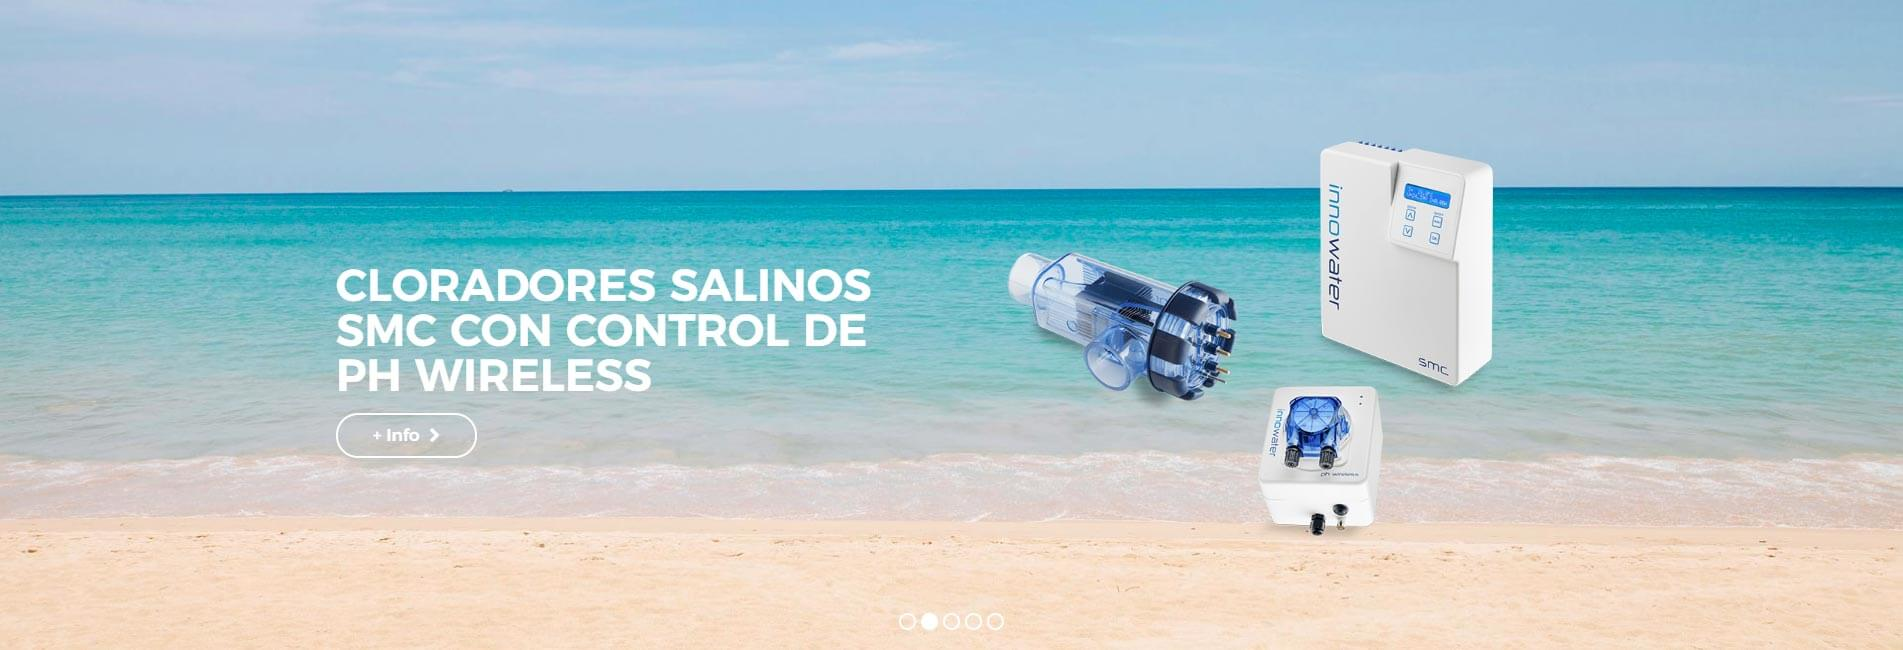 CLORADORES SALINOS SMC CON CONTROL DE PH WIRELESS